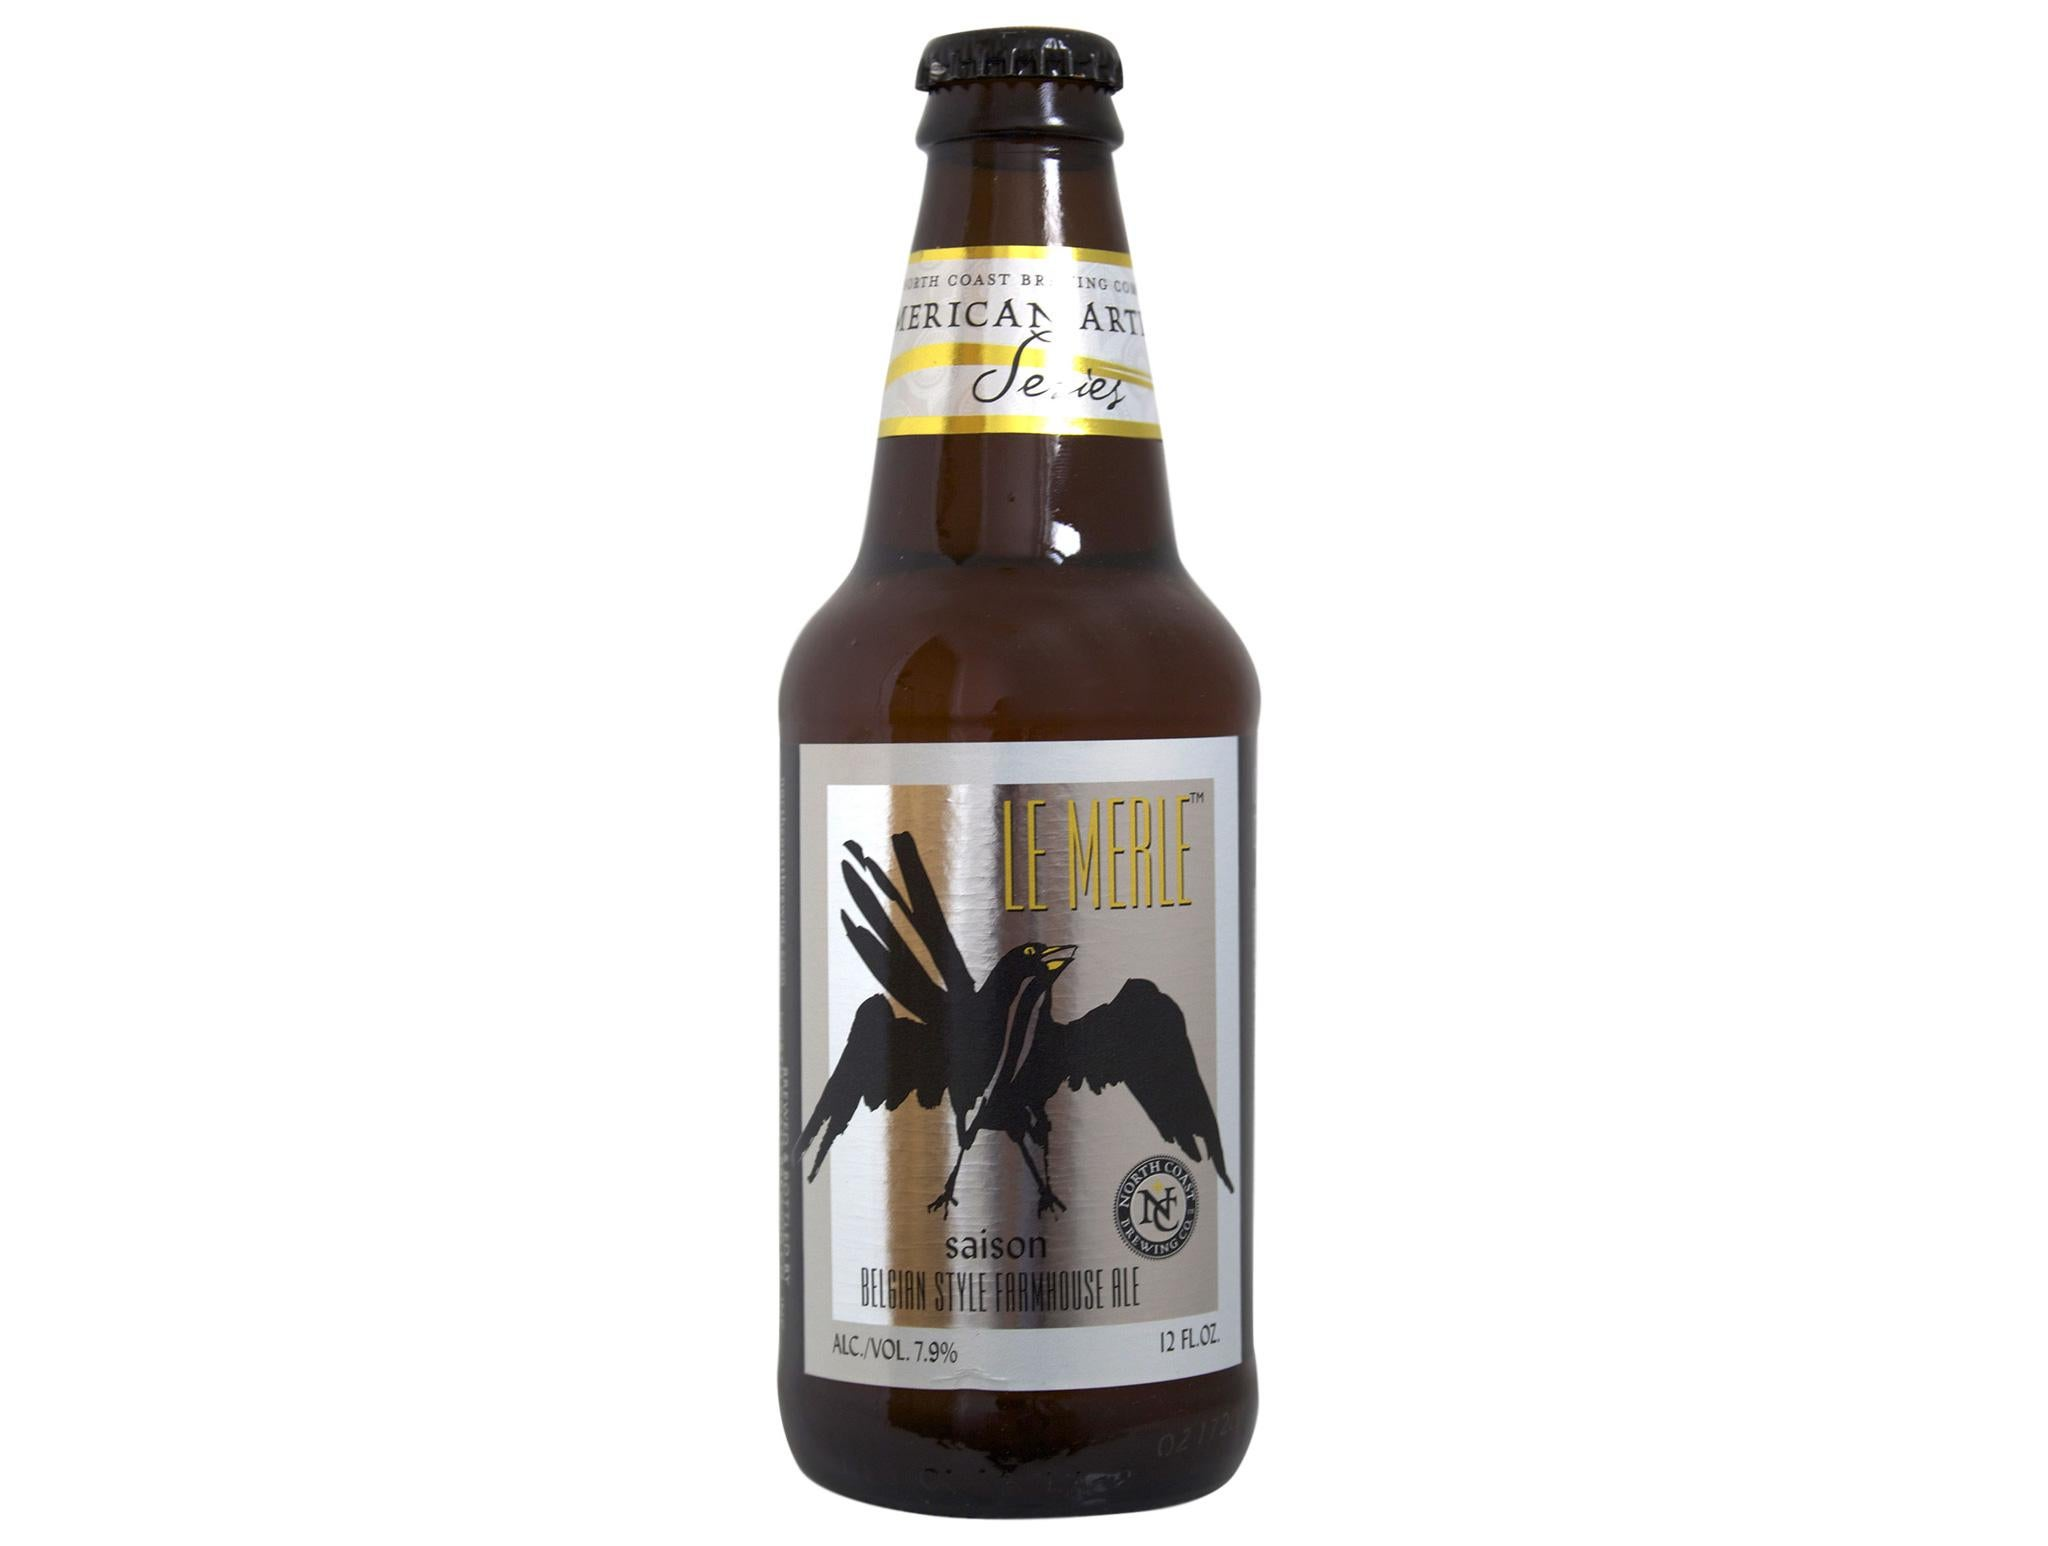 10 best American beers | The Independent